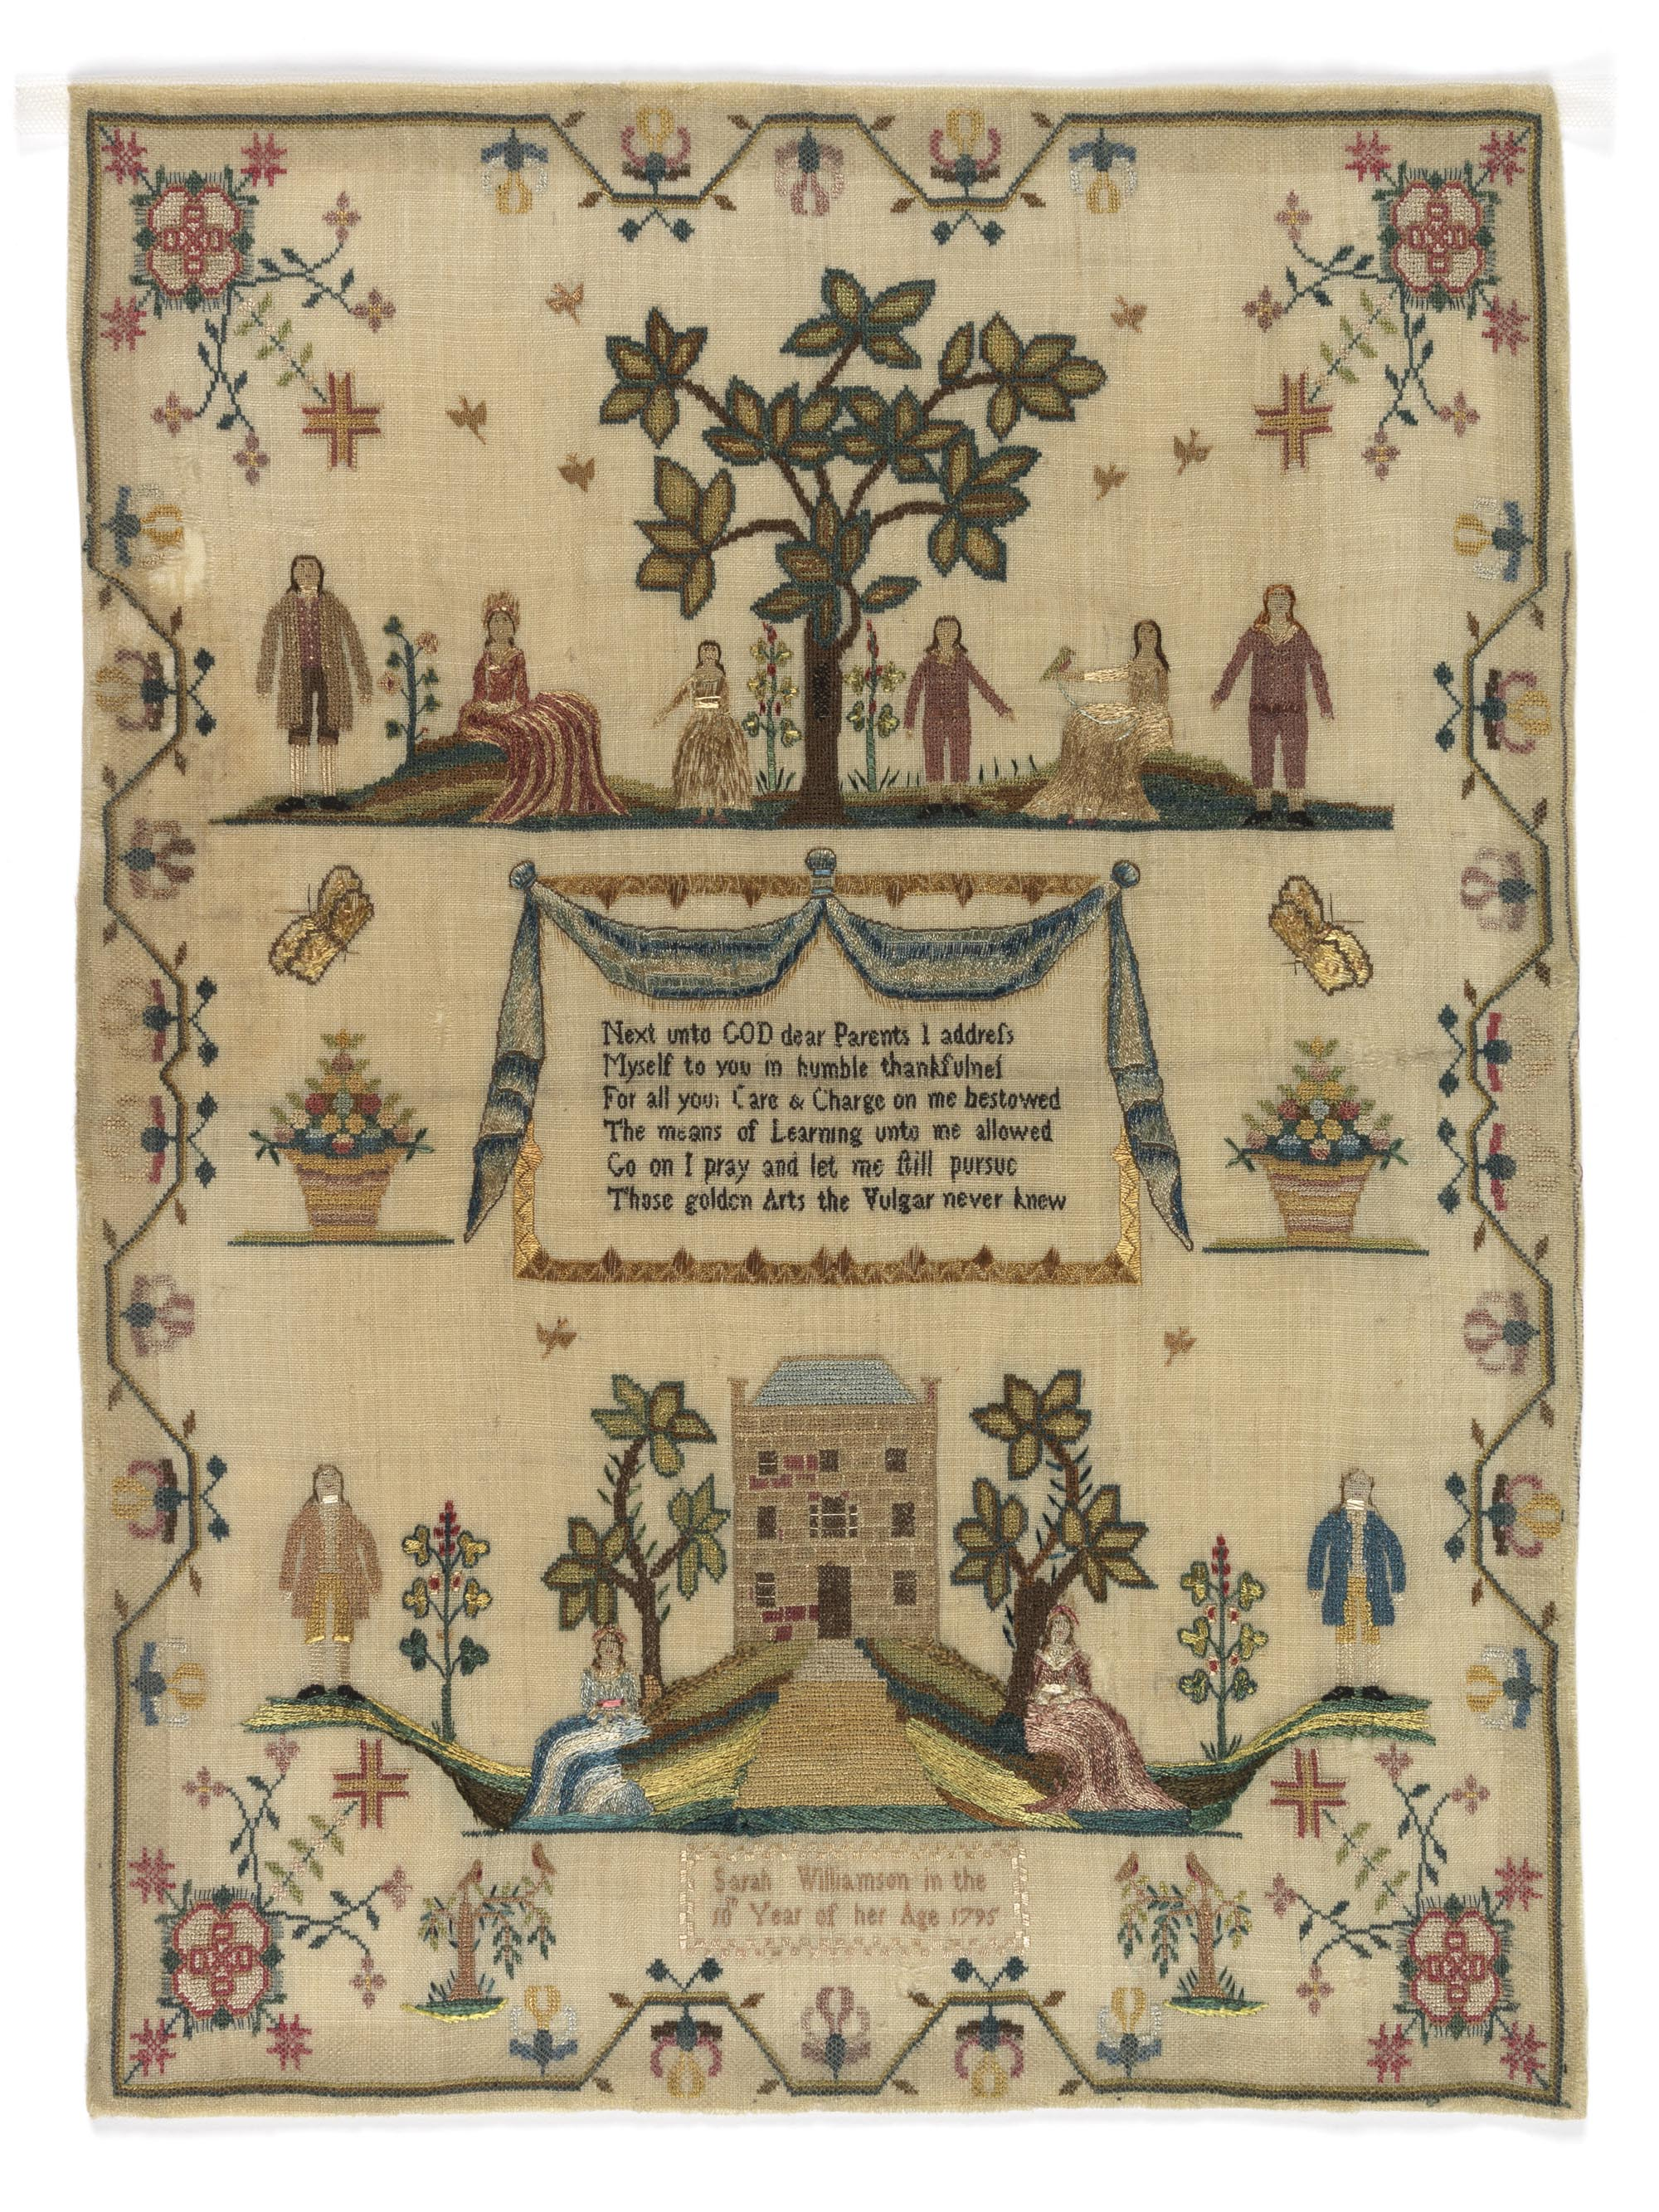 a sampler with trees, houses, people and other details